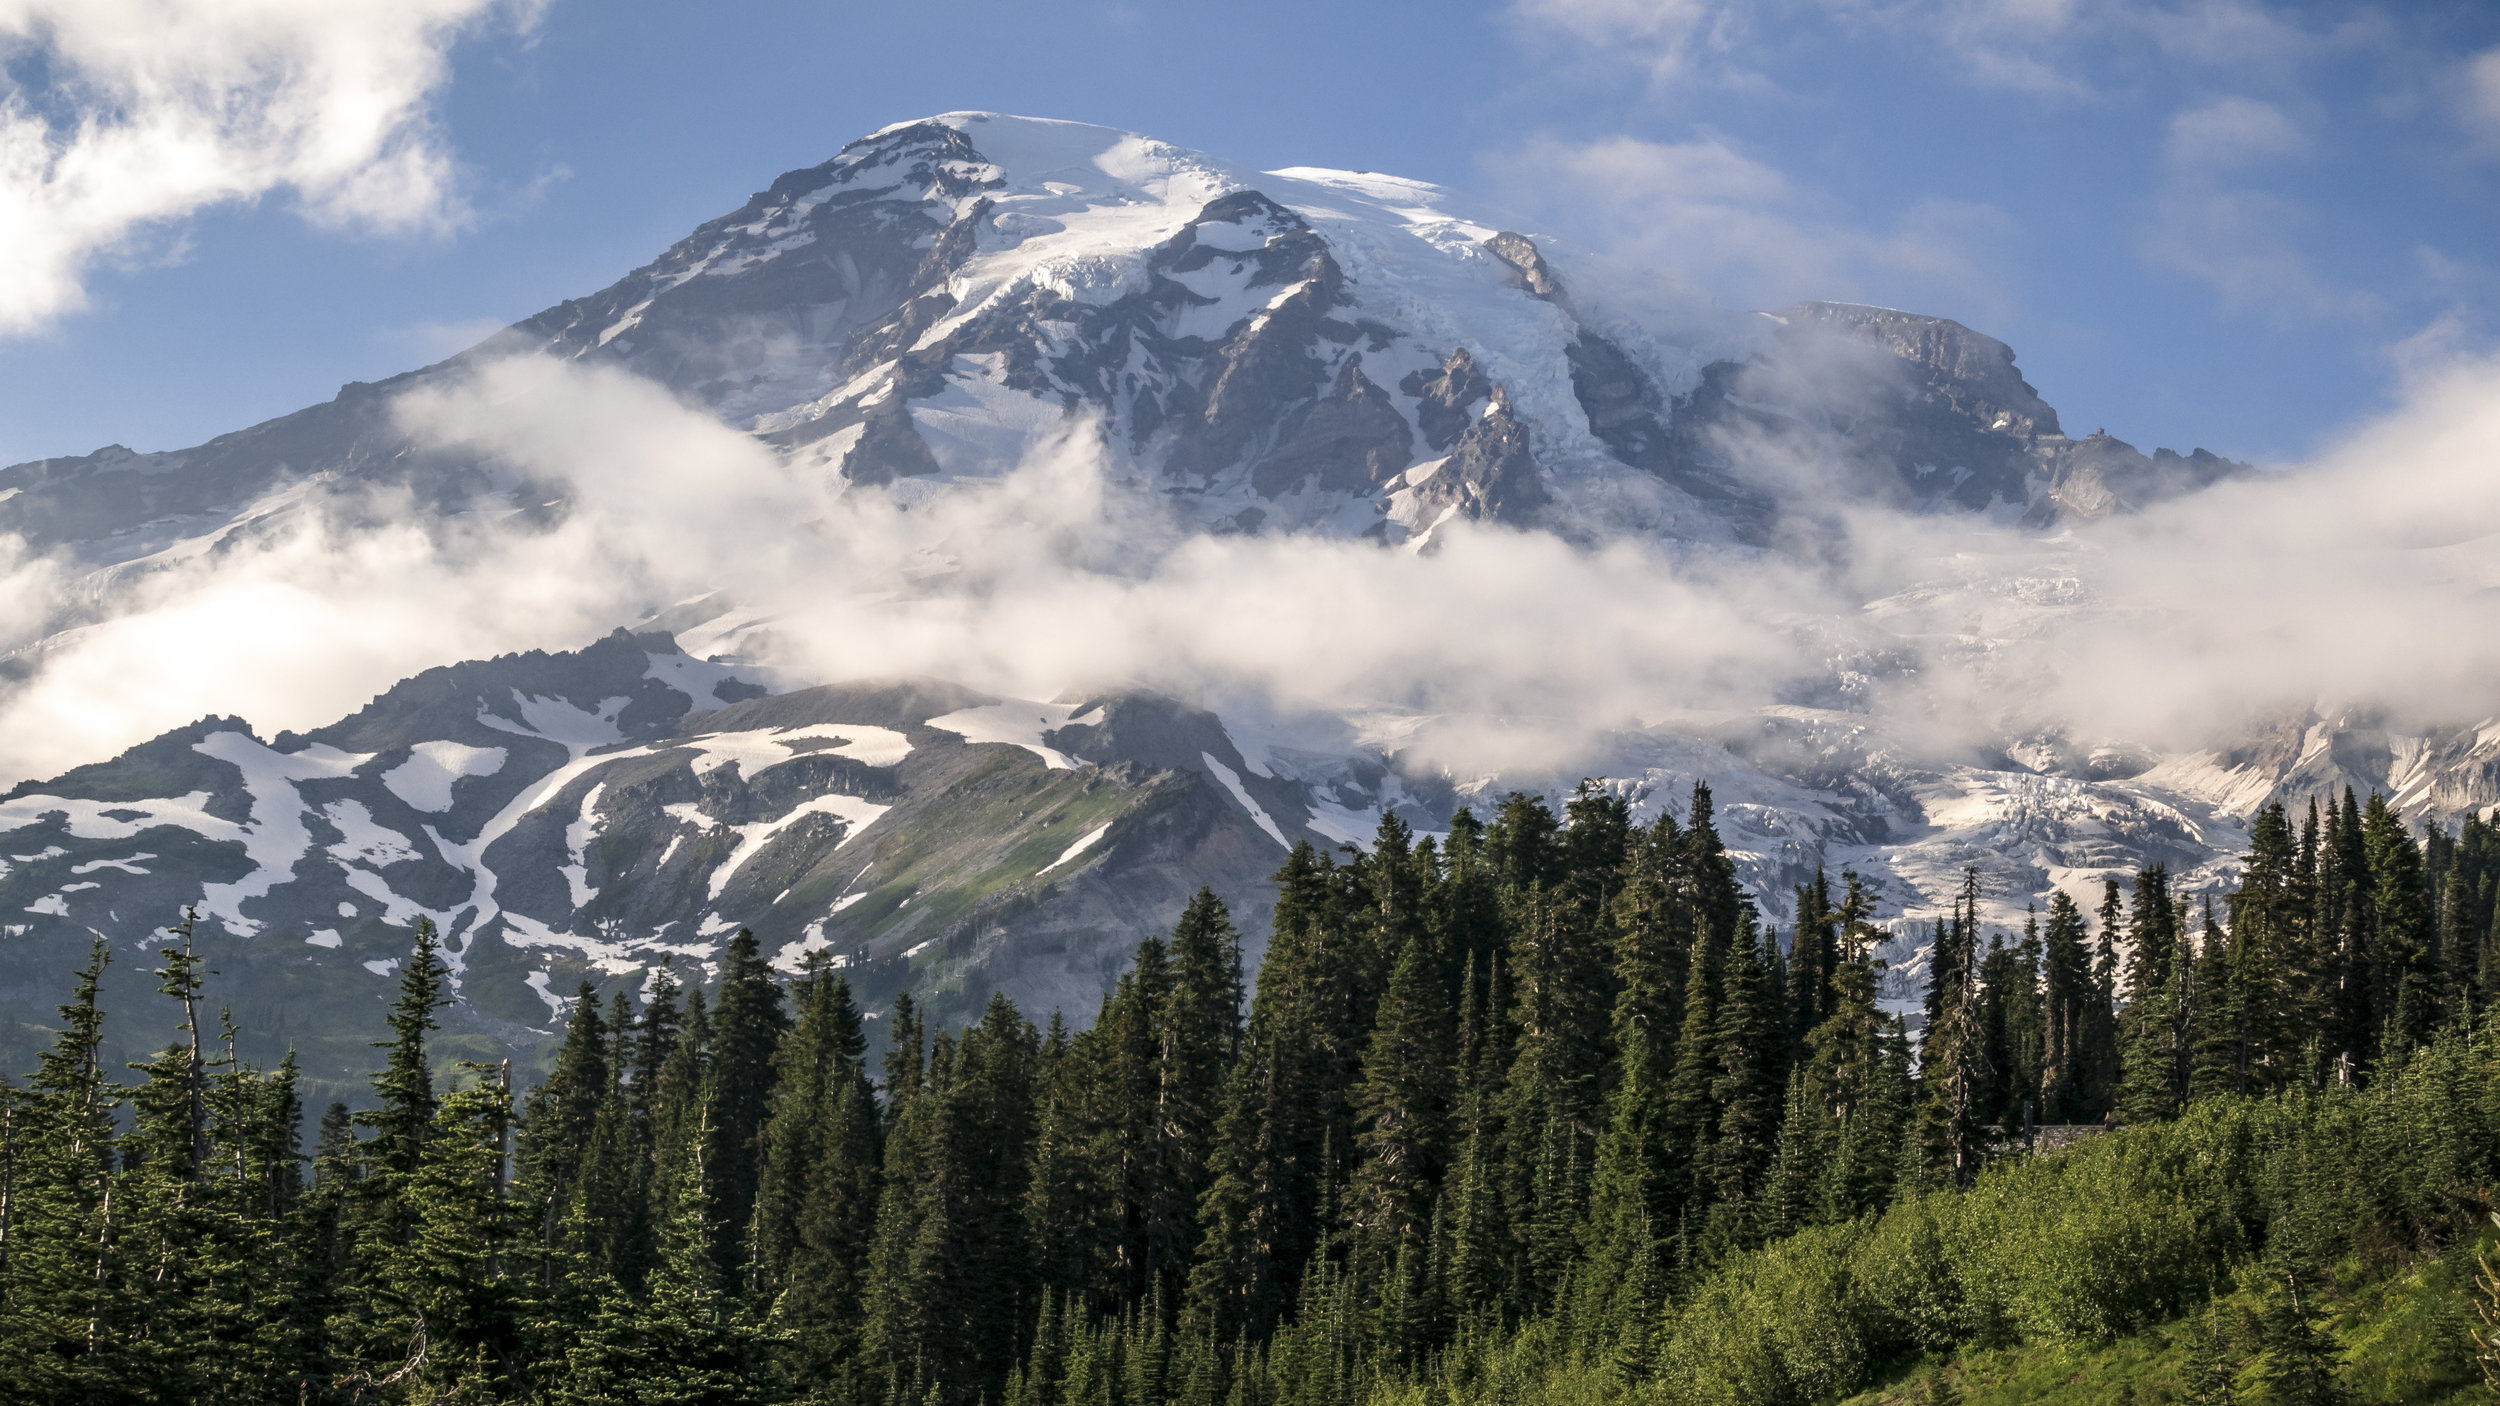 Sunny_Day_View_of_Mt_Rainier_from_Popular_Summer_Hiking_Trail.jpg